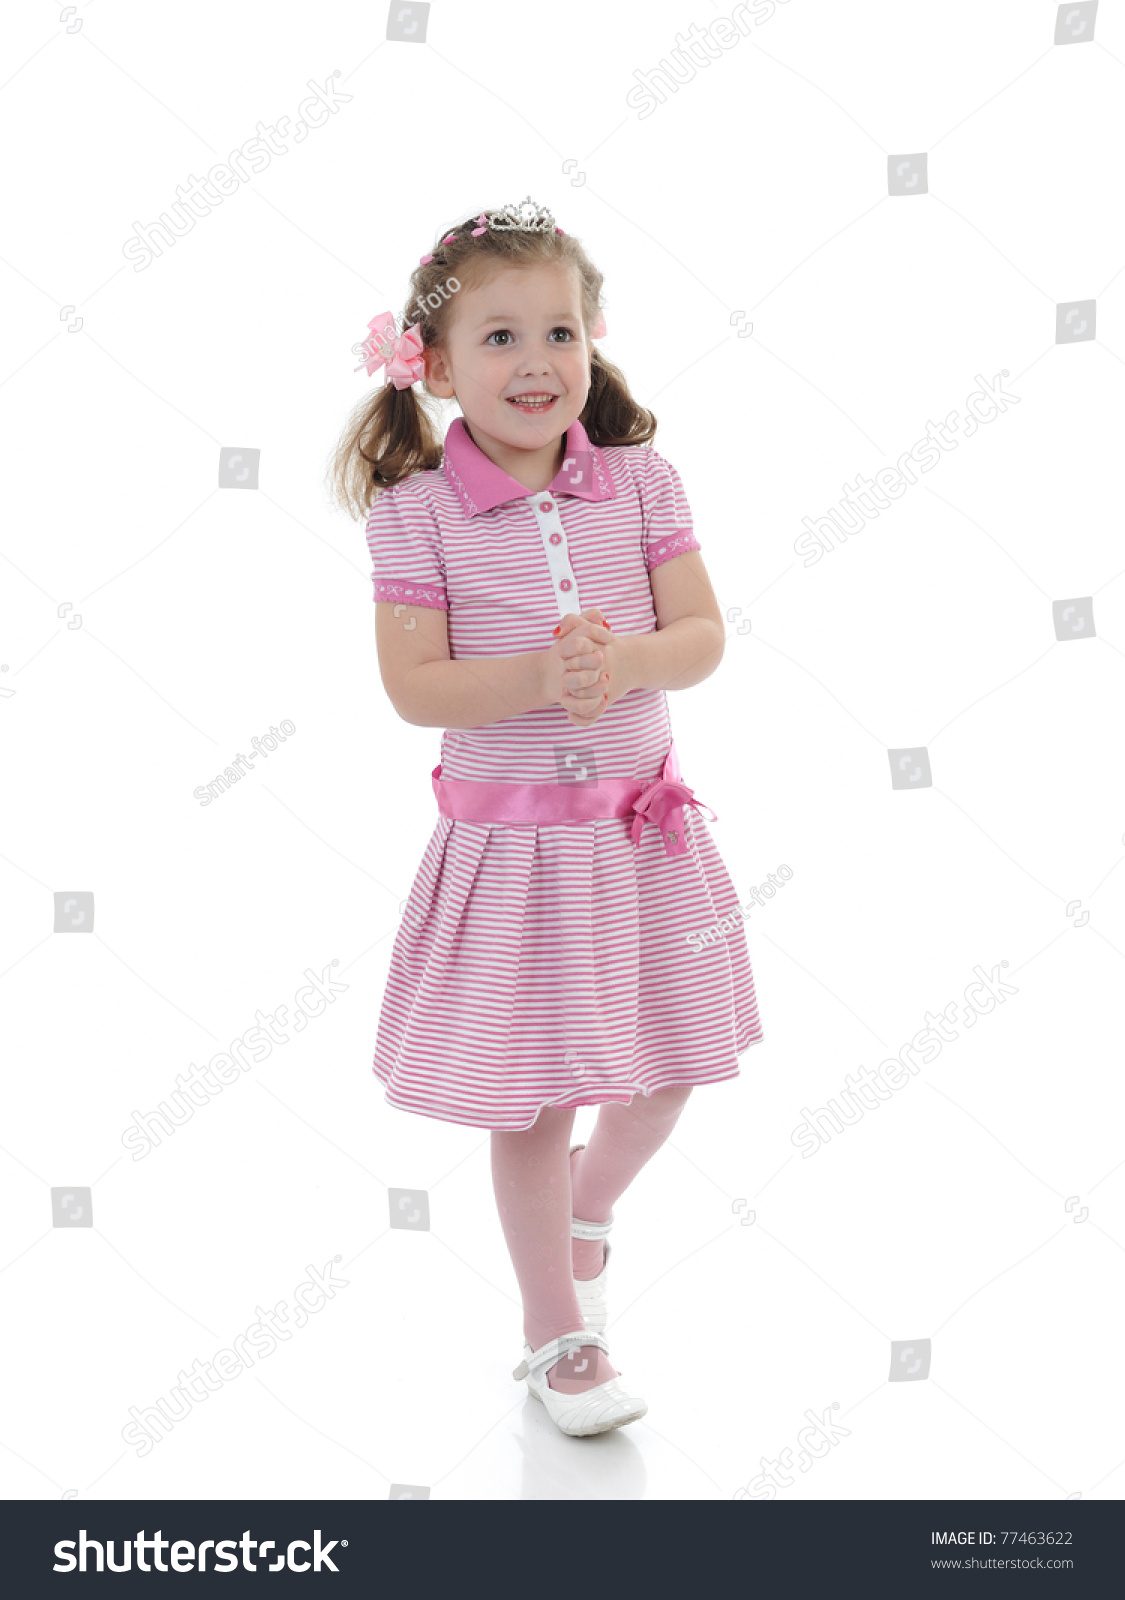 Remarkable, the pretty little girl princess consider